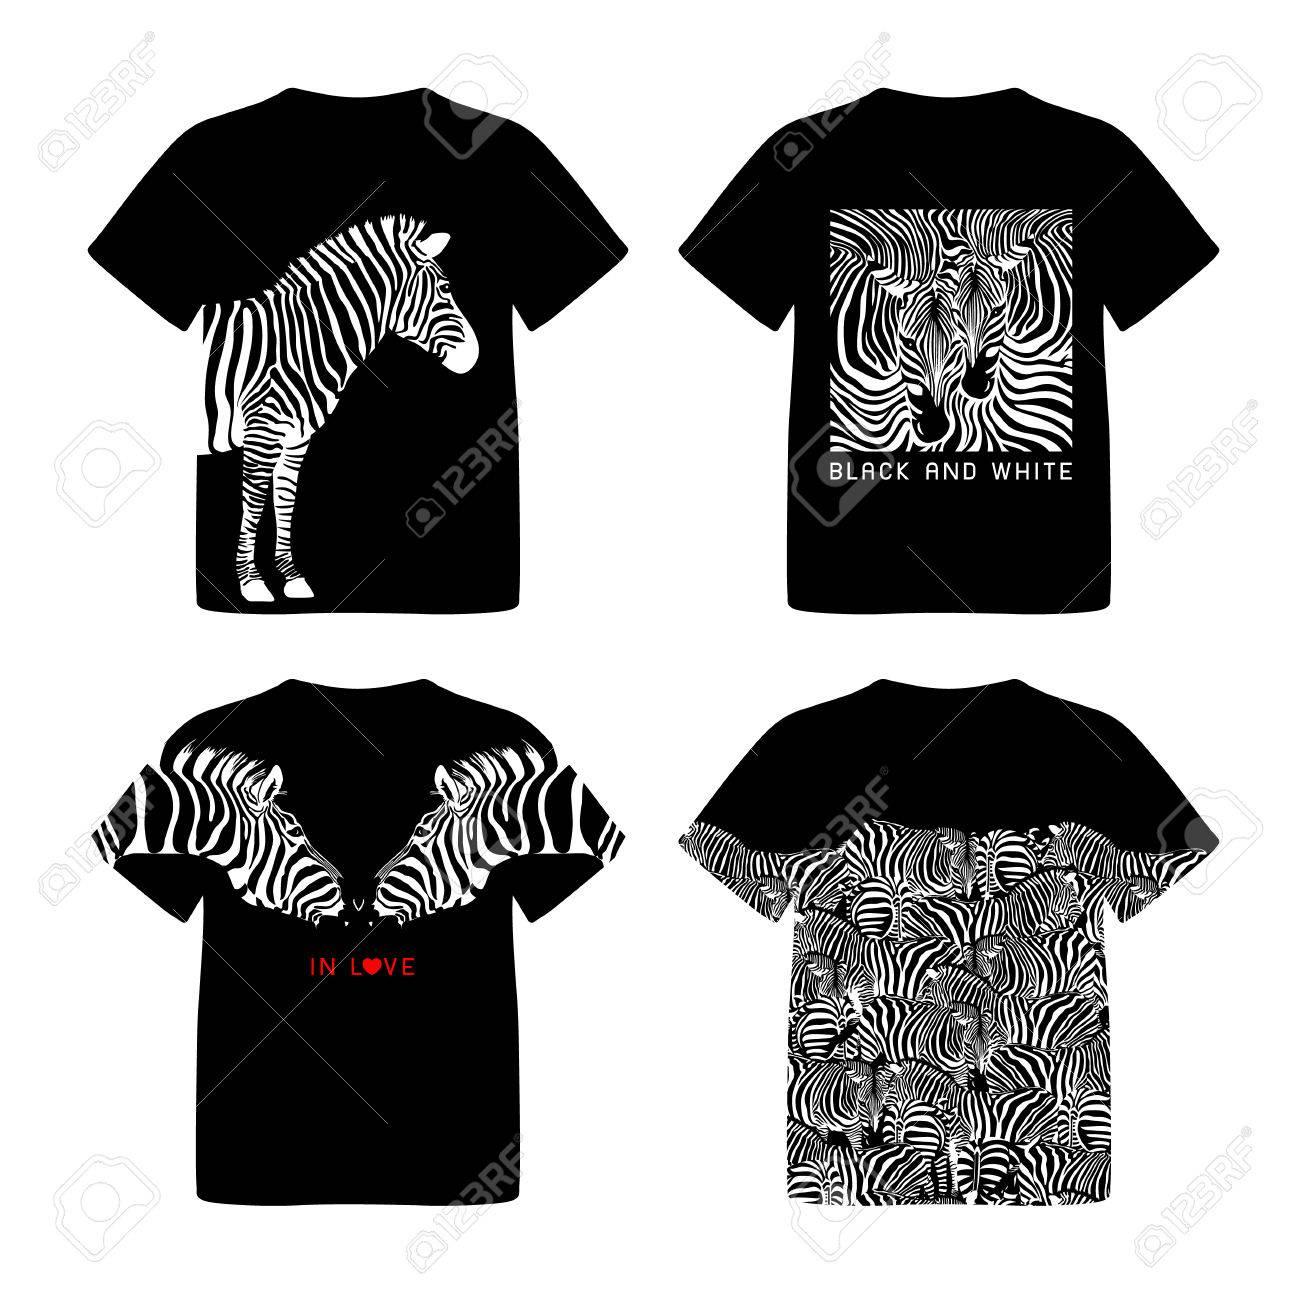 ab1287ed6 T-shirt design with zebra. Wild animal texture. Striped black and white.